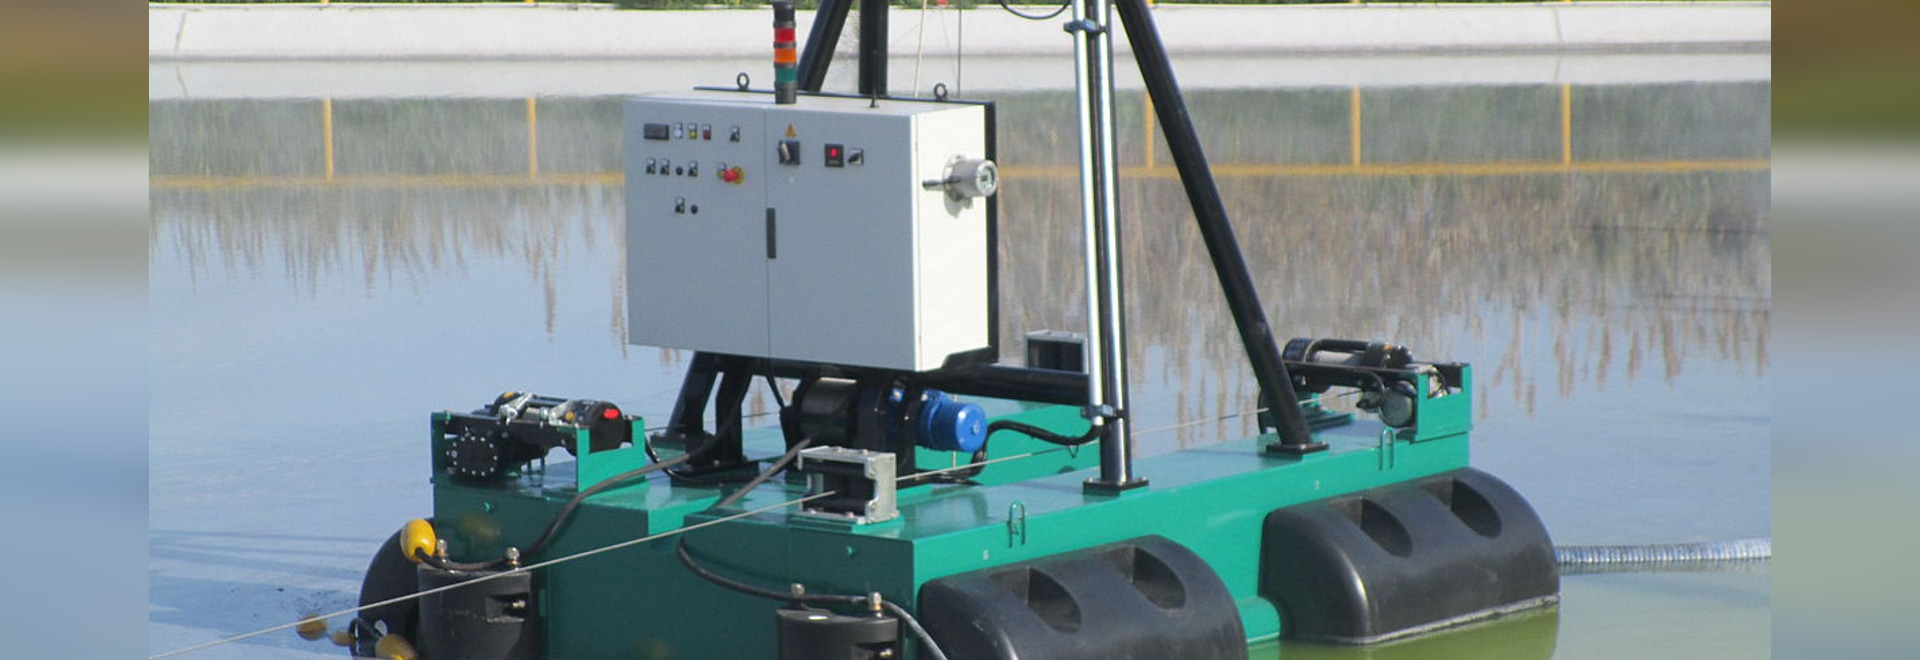 DRAGFLOW REMOTE CONTROLLED DREDGE FOR CHEMICAL INDUSTRY POND DREDGING